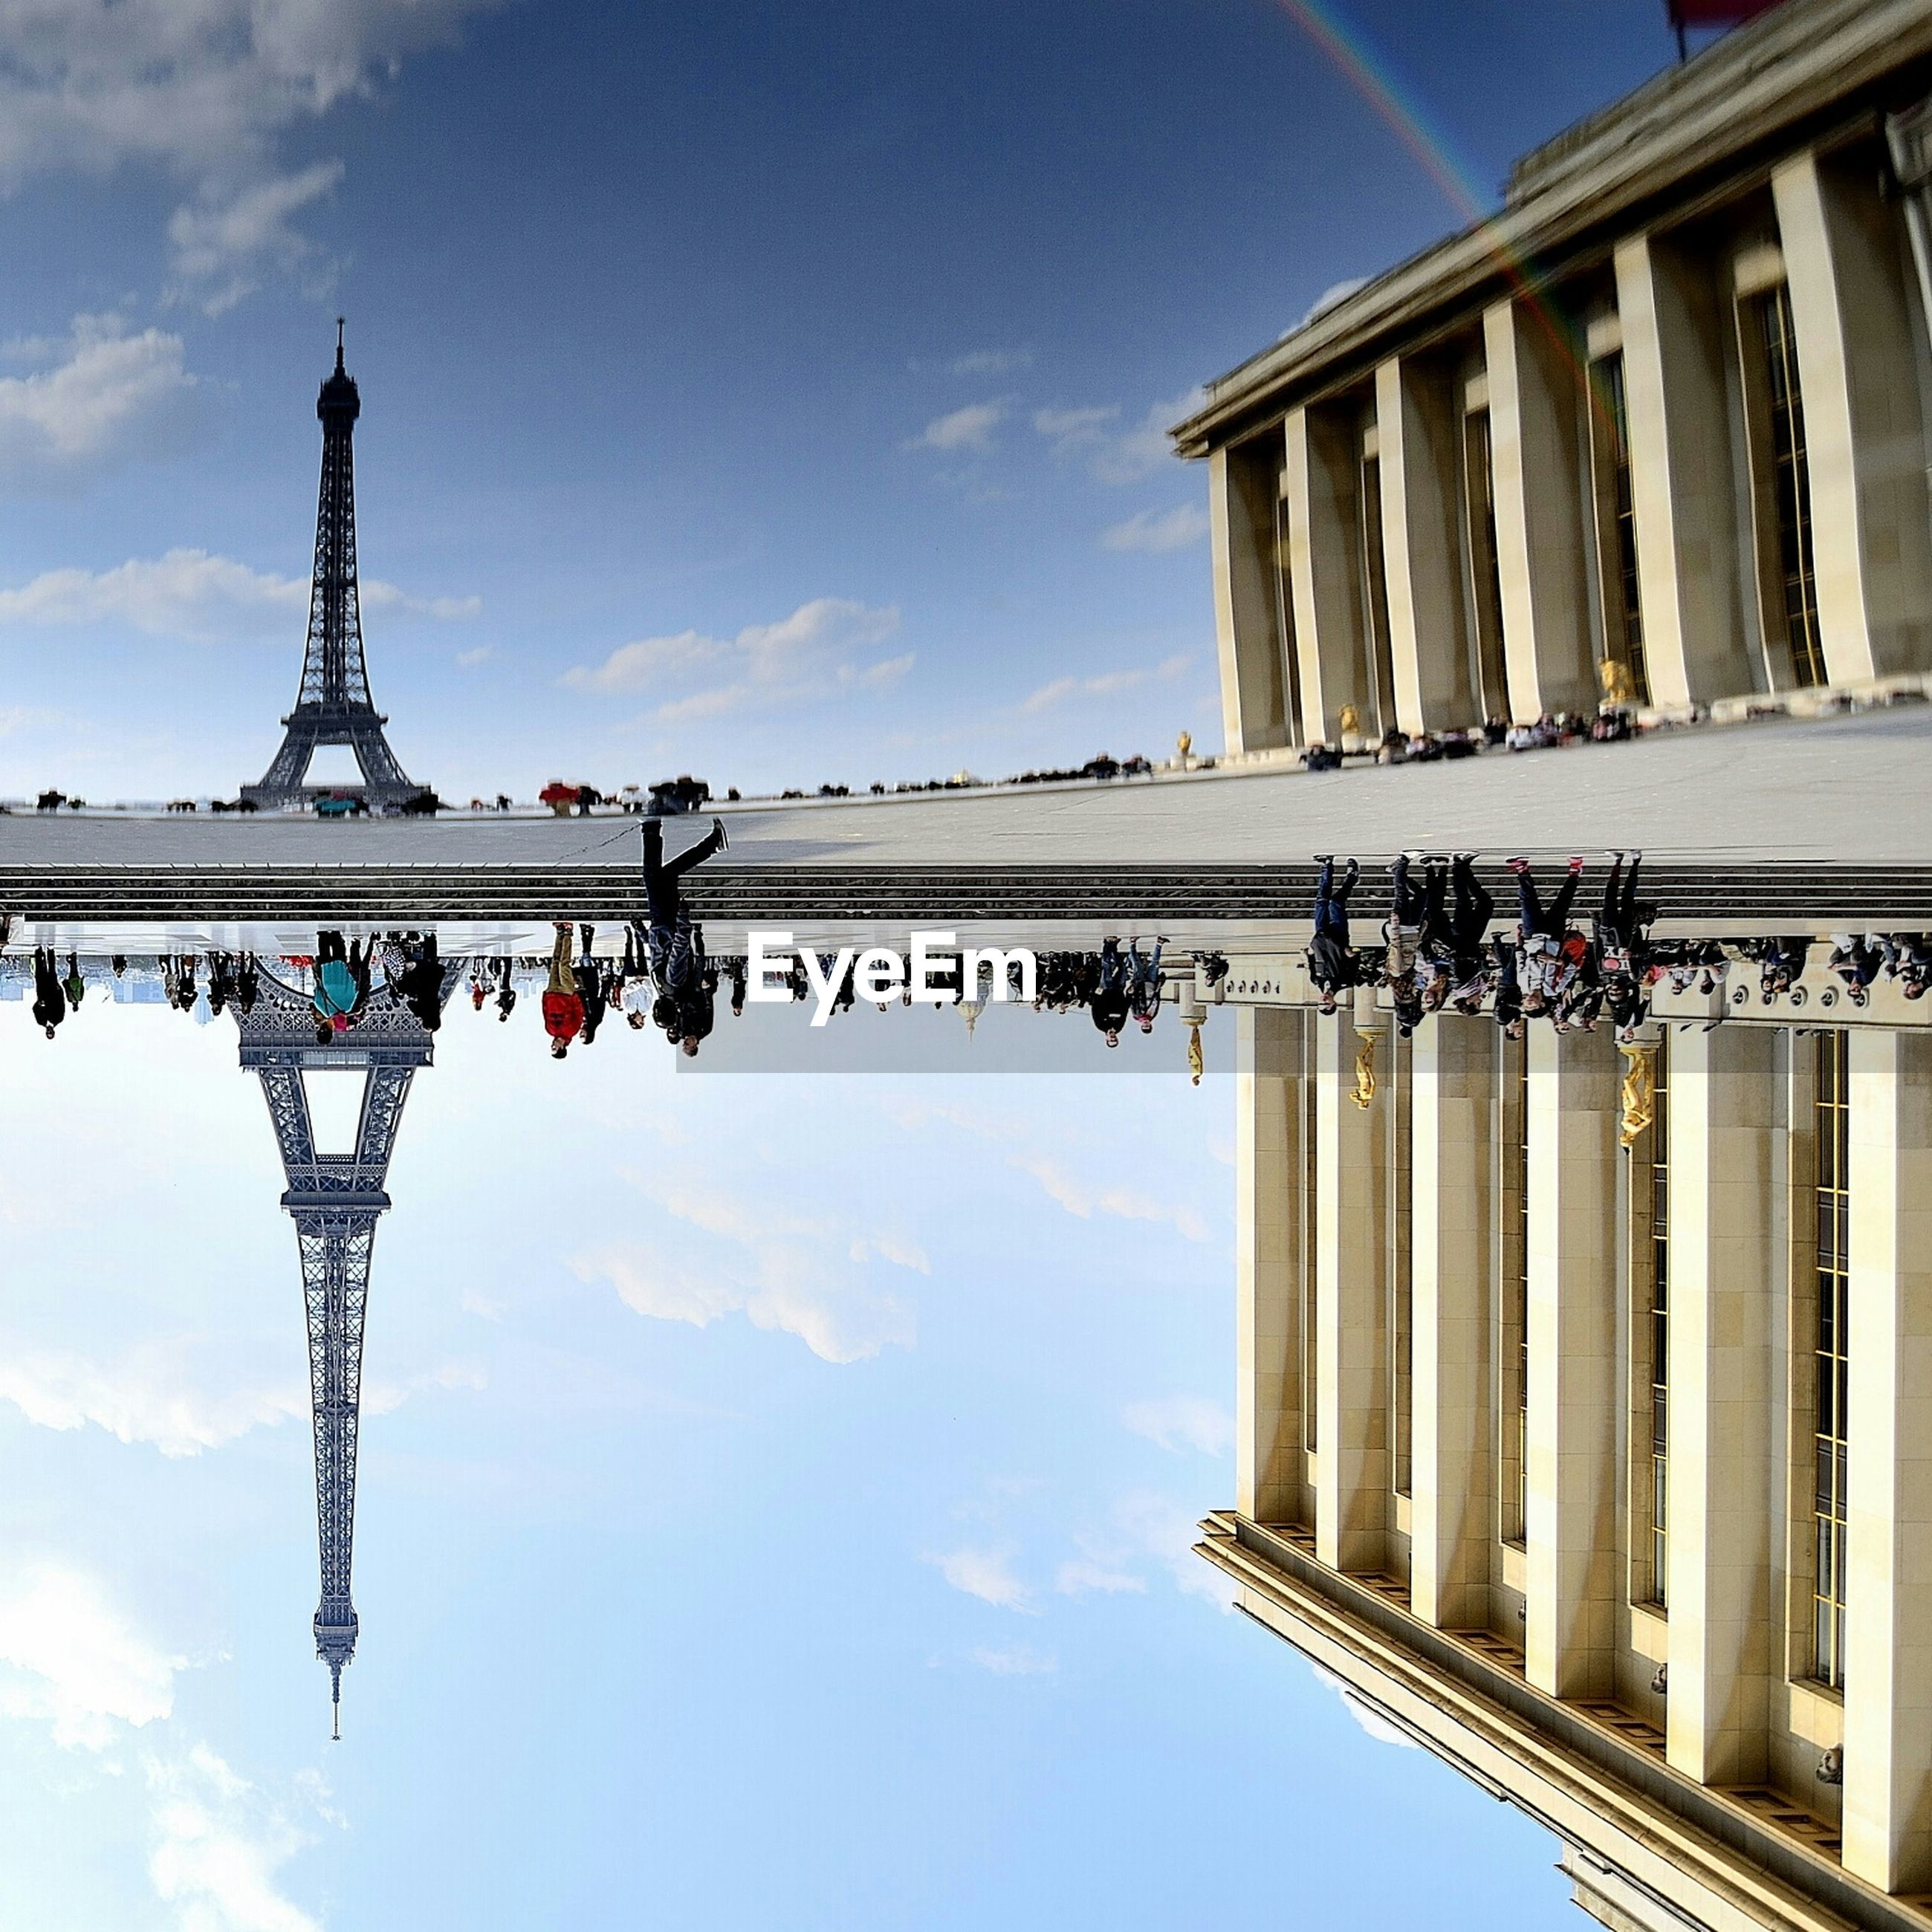 Reflection of eiffel tower in water